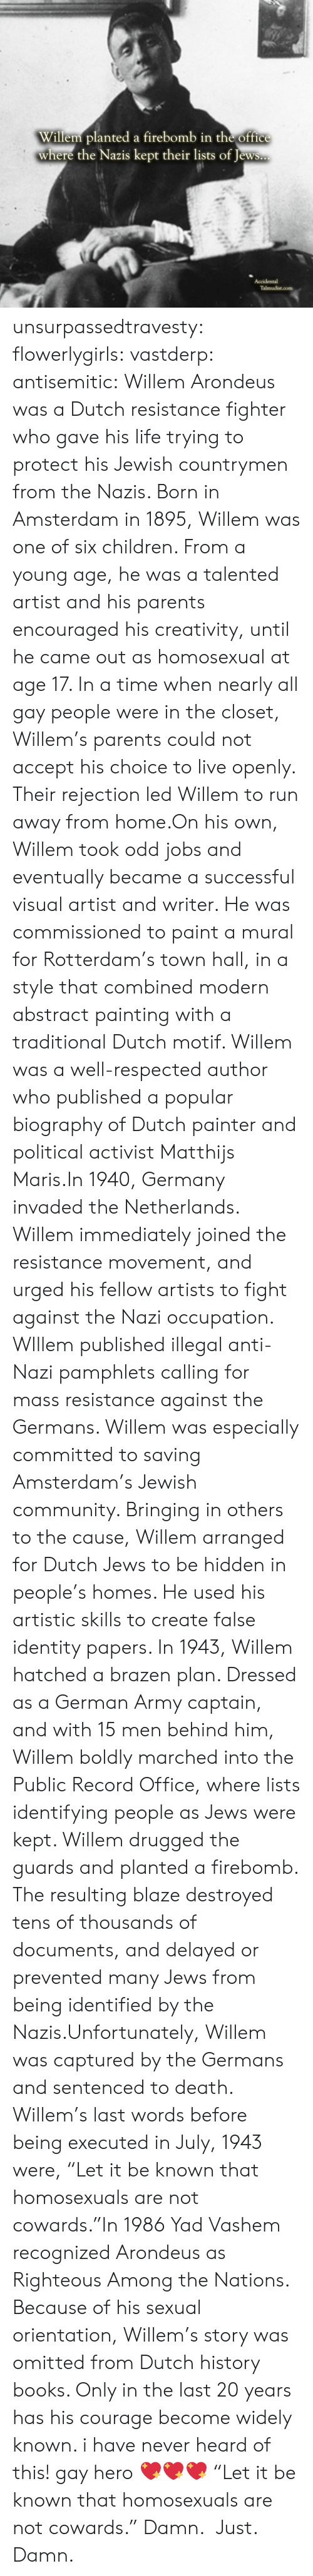 drugged: Willem planted a firebomb in the office  where the Nazis kept their lists of Jews..  Accidental  Talmudist.com unsurpassedtravesty:  flowerlygirls:  vastderp:  antisemitic:   Willem Arondeus was a Dutch resistance fighter who gave his life trying to protect his Jewish countrymen from the Nazis. Born in Amsterdam in 1895, Willem was one of six children. From a young age, he was a talented artist and his parents encouraged his creativity, until he came out as homosexual at age 17. In a time when nearly all gay people were in the closet, Willem's parents could not accept his choice to live openly. Their rejection led Willem to run away from home.On his own, Willem took odd jobs and eventually became a successful visual artist and writer. He was commissioned to paint a mural for Rotterdam's town hall, in a style that combined modern abstract painting with a traditional Dutch motif. Willem was a well-respected author who published a popular biography of Dutch painter and political activist Matthijs Maris.In 1940, Germany invaded the Netherlands. Willem immediately joined the resistance movement, and urged his fellow artists to fight against the Nazi occupation. WIllem published illegal anti-Nazi pamphlets calling for mass resistance against the Germans. Willem was especially committed to saving Amsterdam's Jewish community. Bringing in others to the cause, Willem arranged for Dutch Jews to be hidden in people's homes. He used his artistic skills to create false identity papers. In 1943, Willem hatched a brazen plan. Dressed as a German Army captain, and with 15 men behind him, Willem boldly marched into the Public Record Office, where lists identifying people as Jews were kept. Willem drugged the guards and planted a firebomb. The resulting blaze destroyed tens of thousands of documents, and delayed or prevented many Jews from being identified by the Nazis.Unfortunately, Willem was captured by the Germans and sentenced to death. Willem's last words before being 